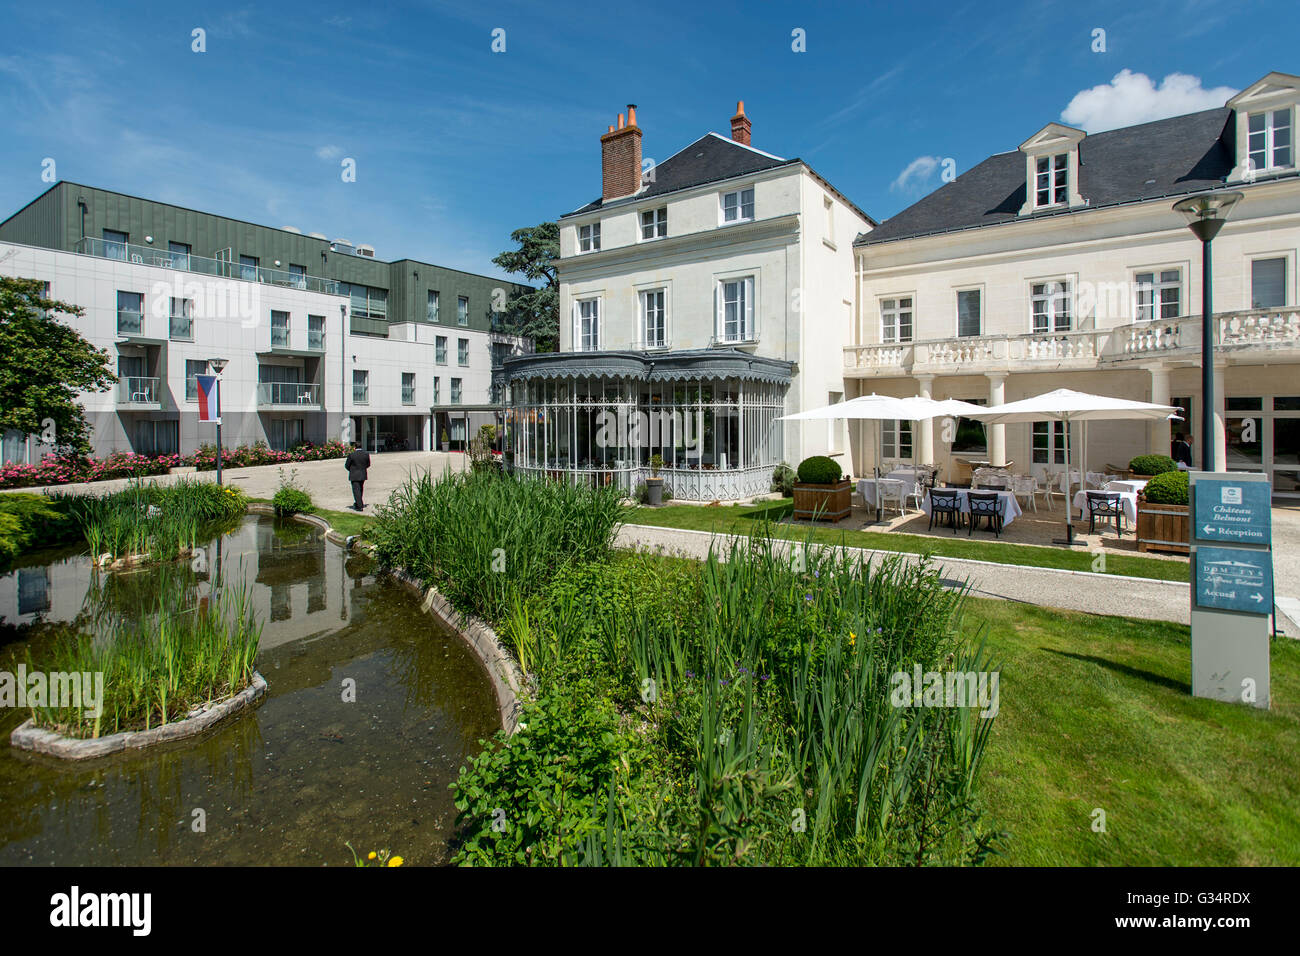 Where To Stay In Tours France Lifehacked1st Com